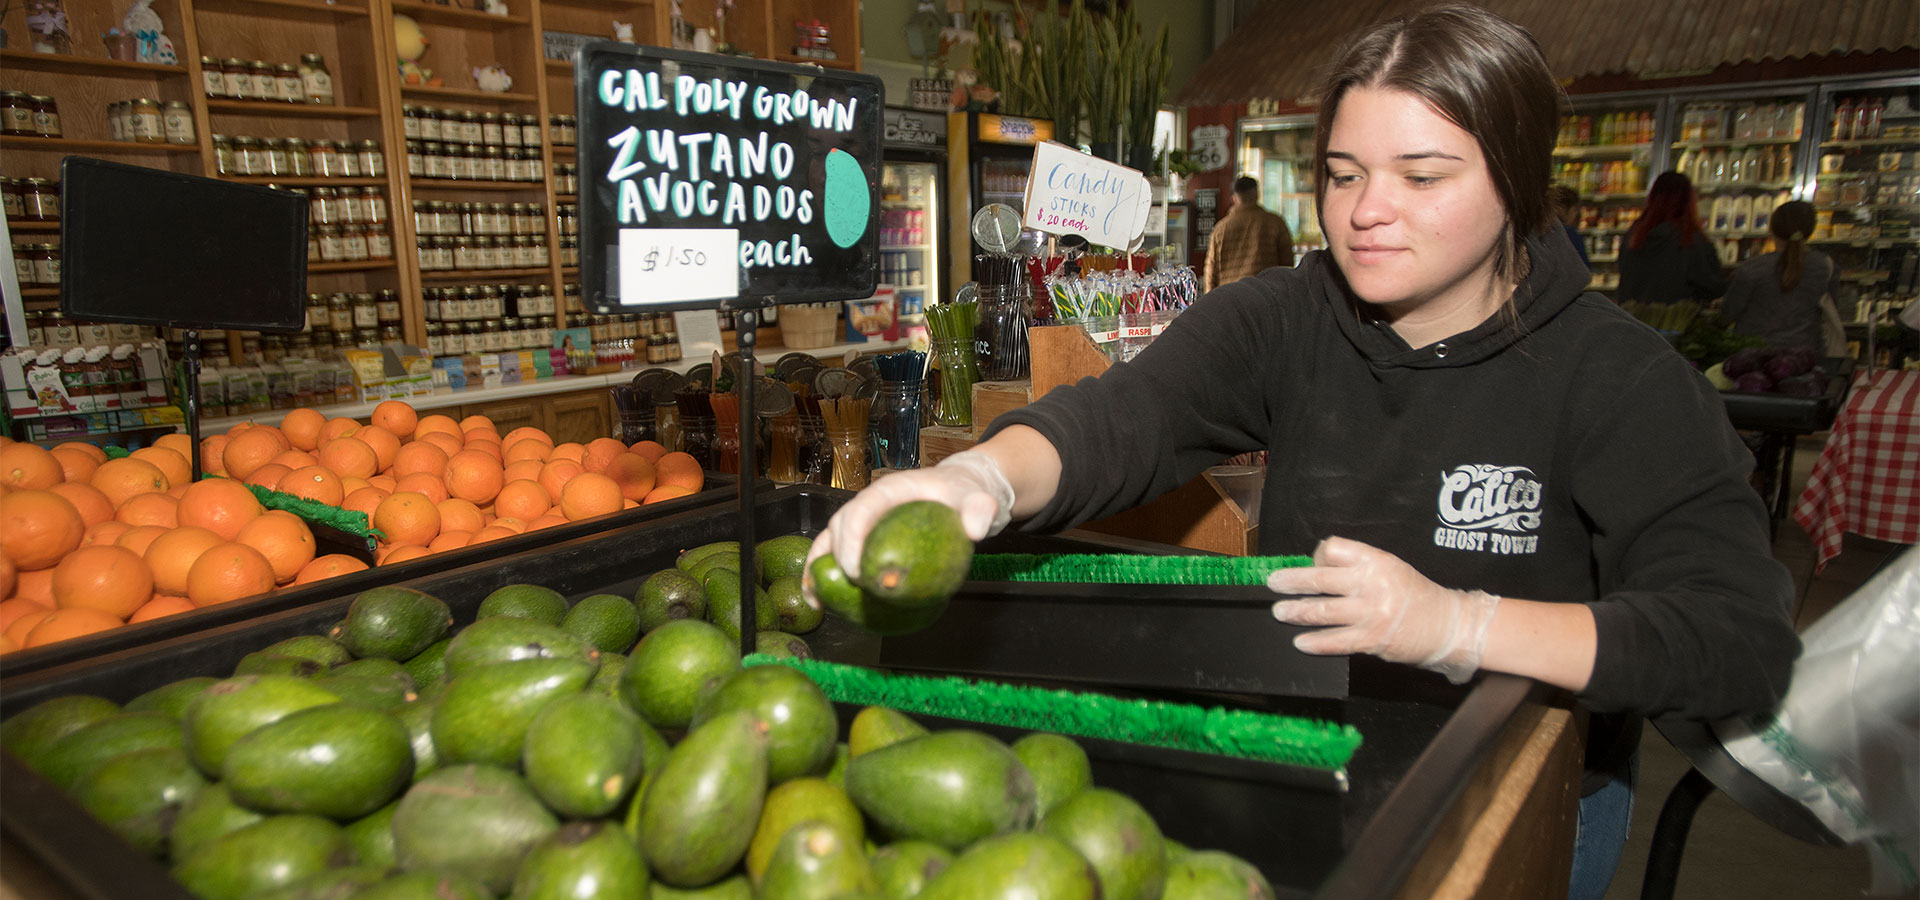 Farm Store Employee works with Avocados